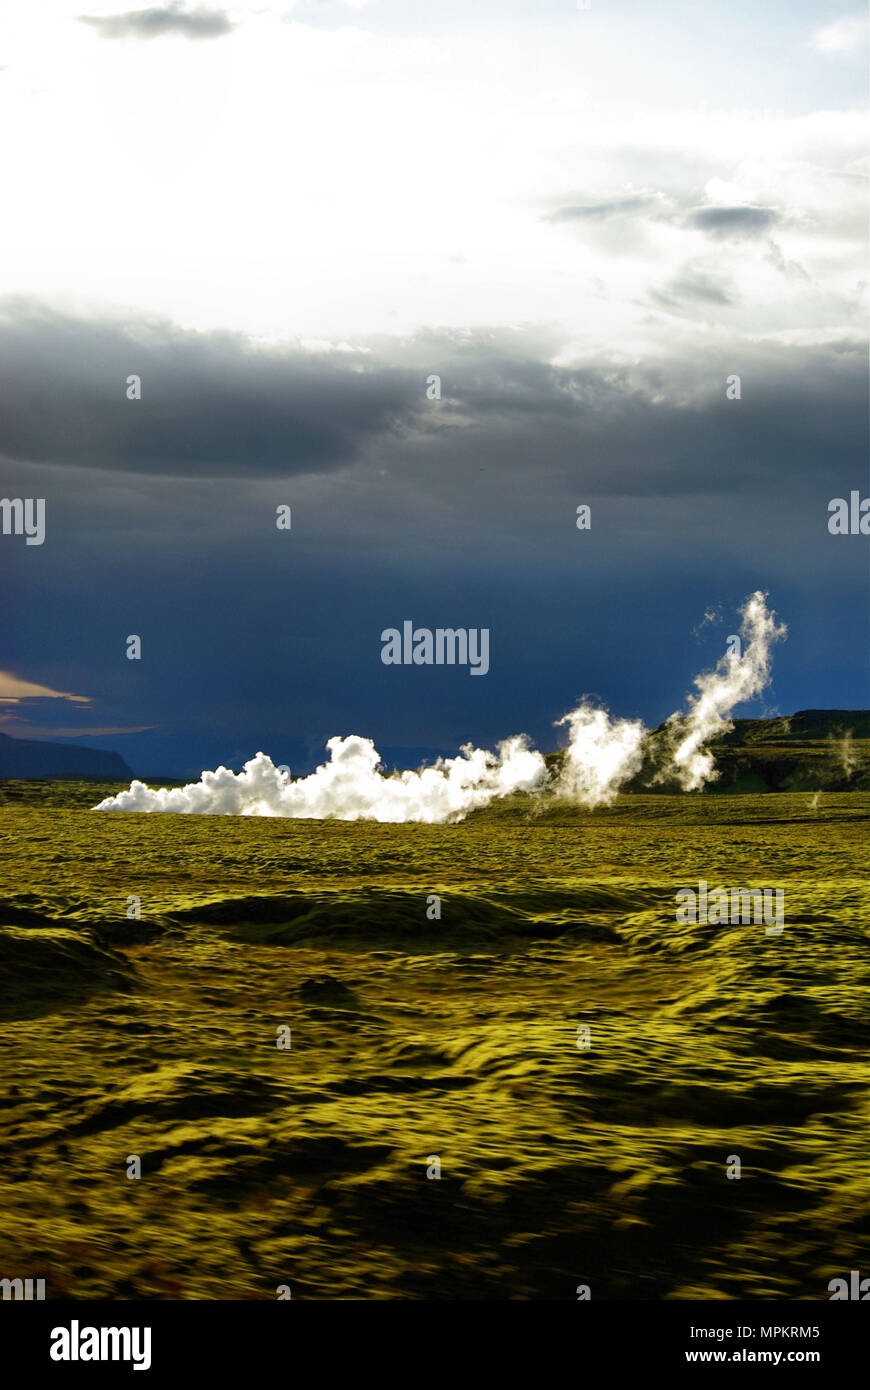 Steam and smoke from a geothermal vent, Southern Iceland - Stock Image